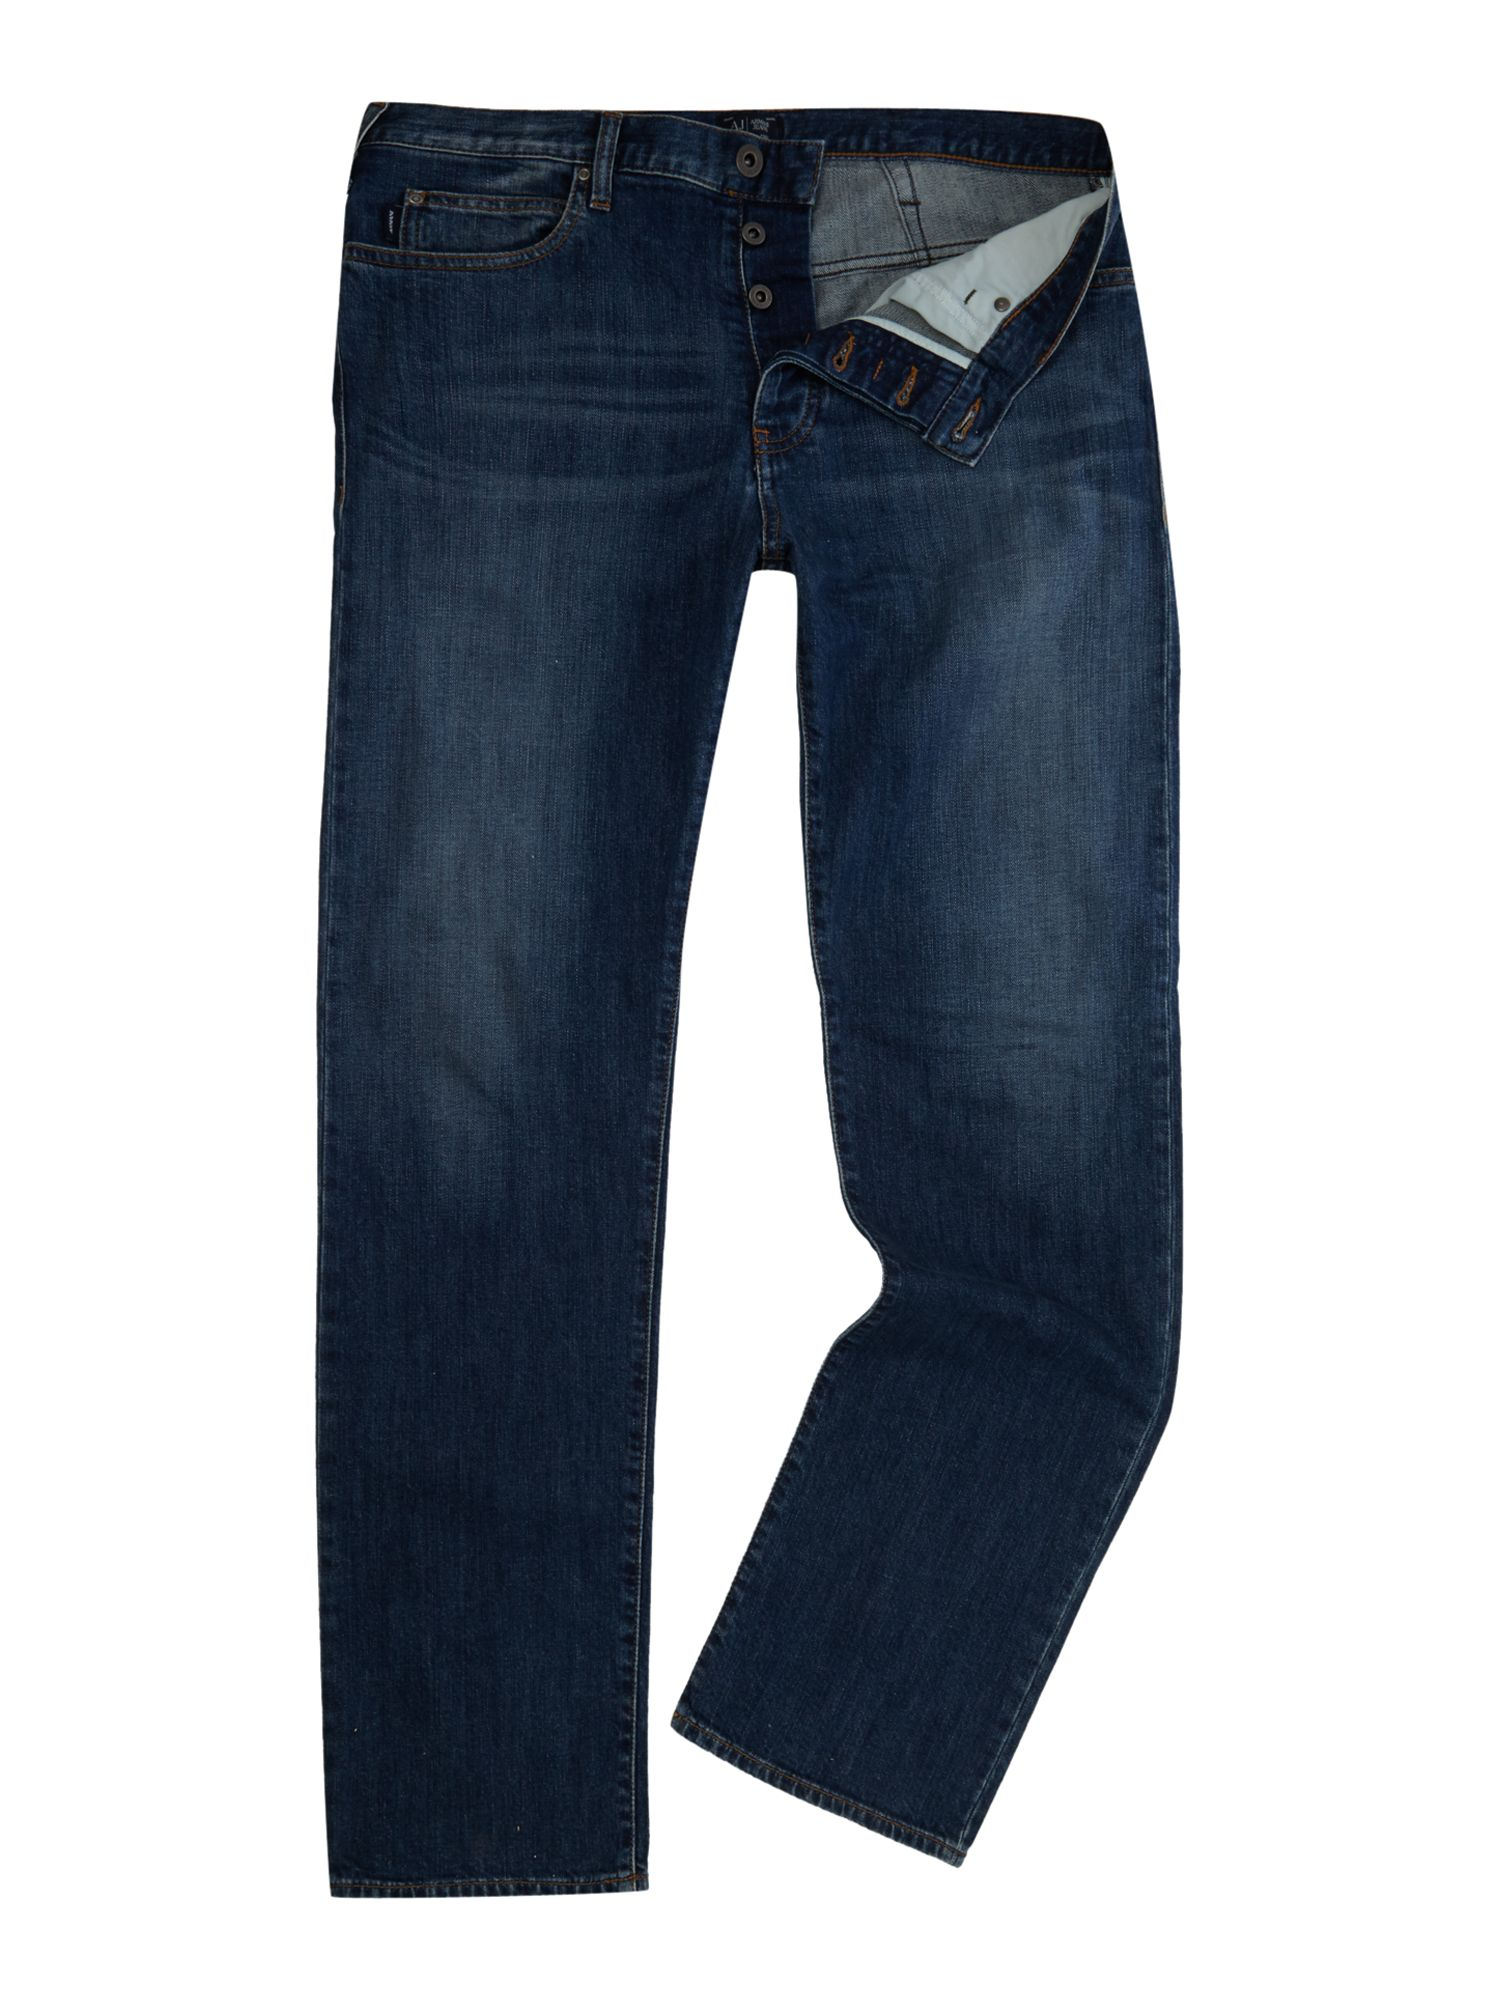 Jean levis flare homme